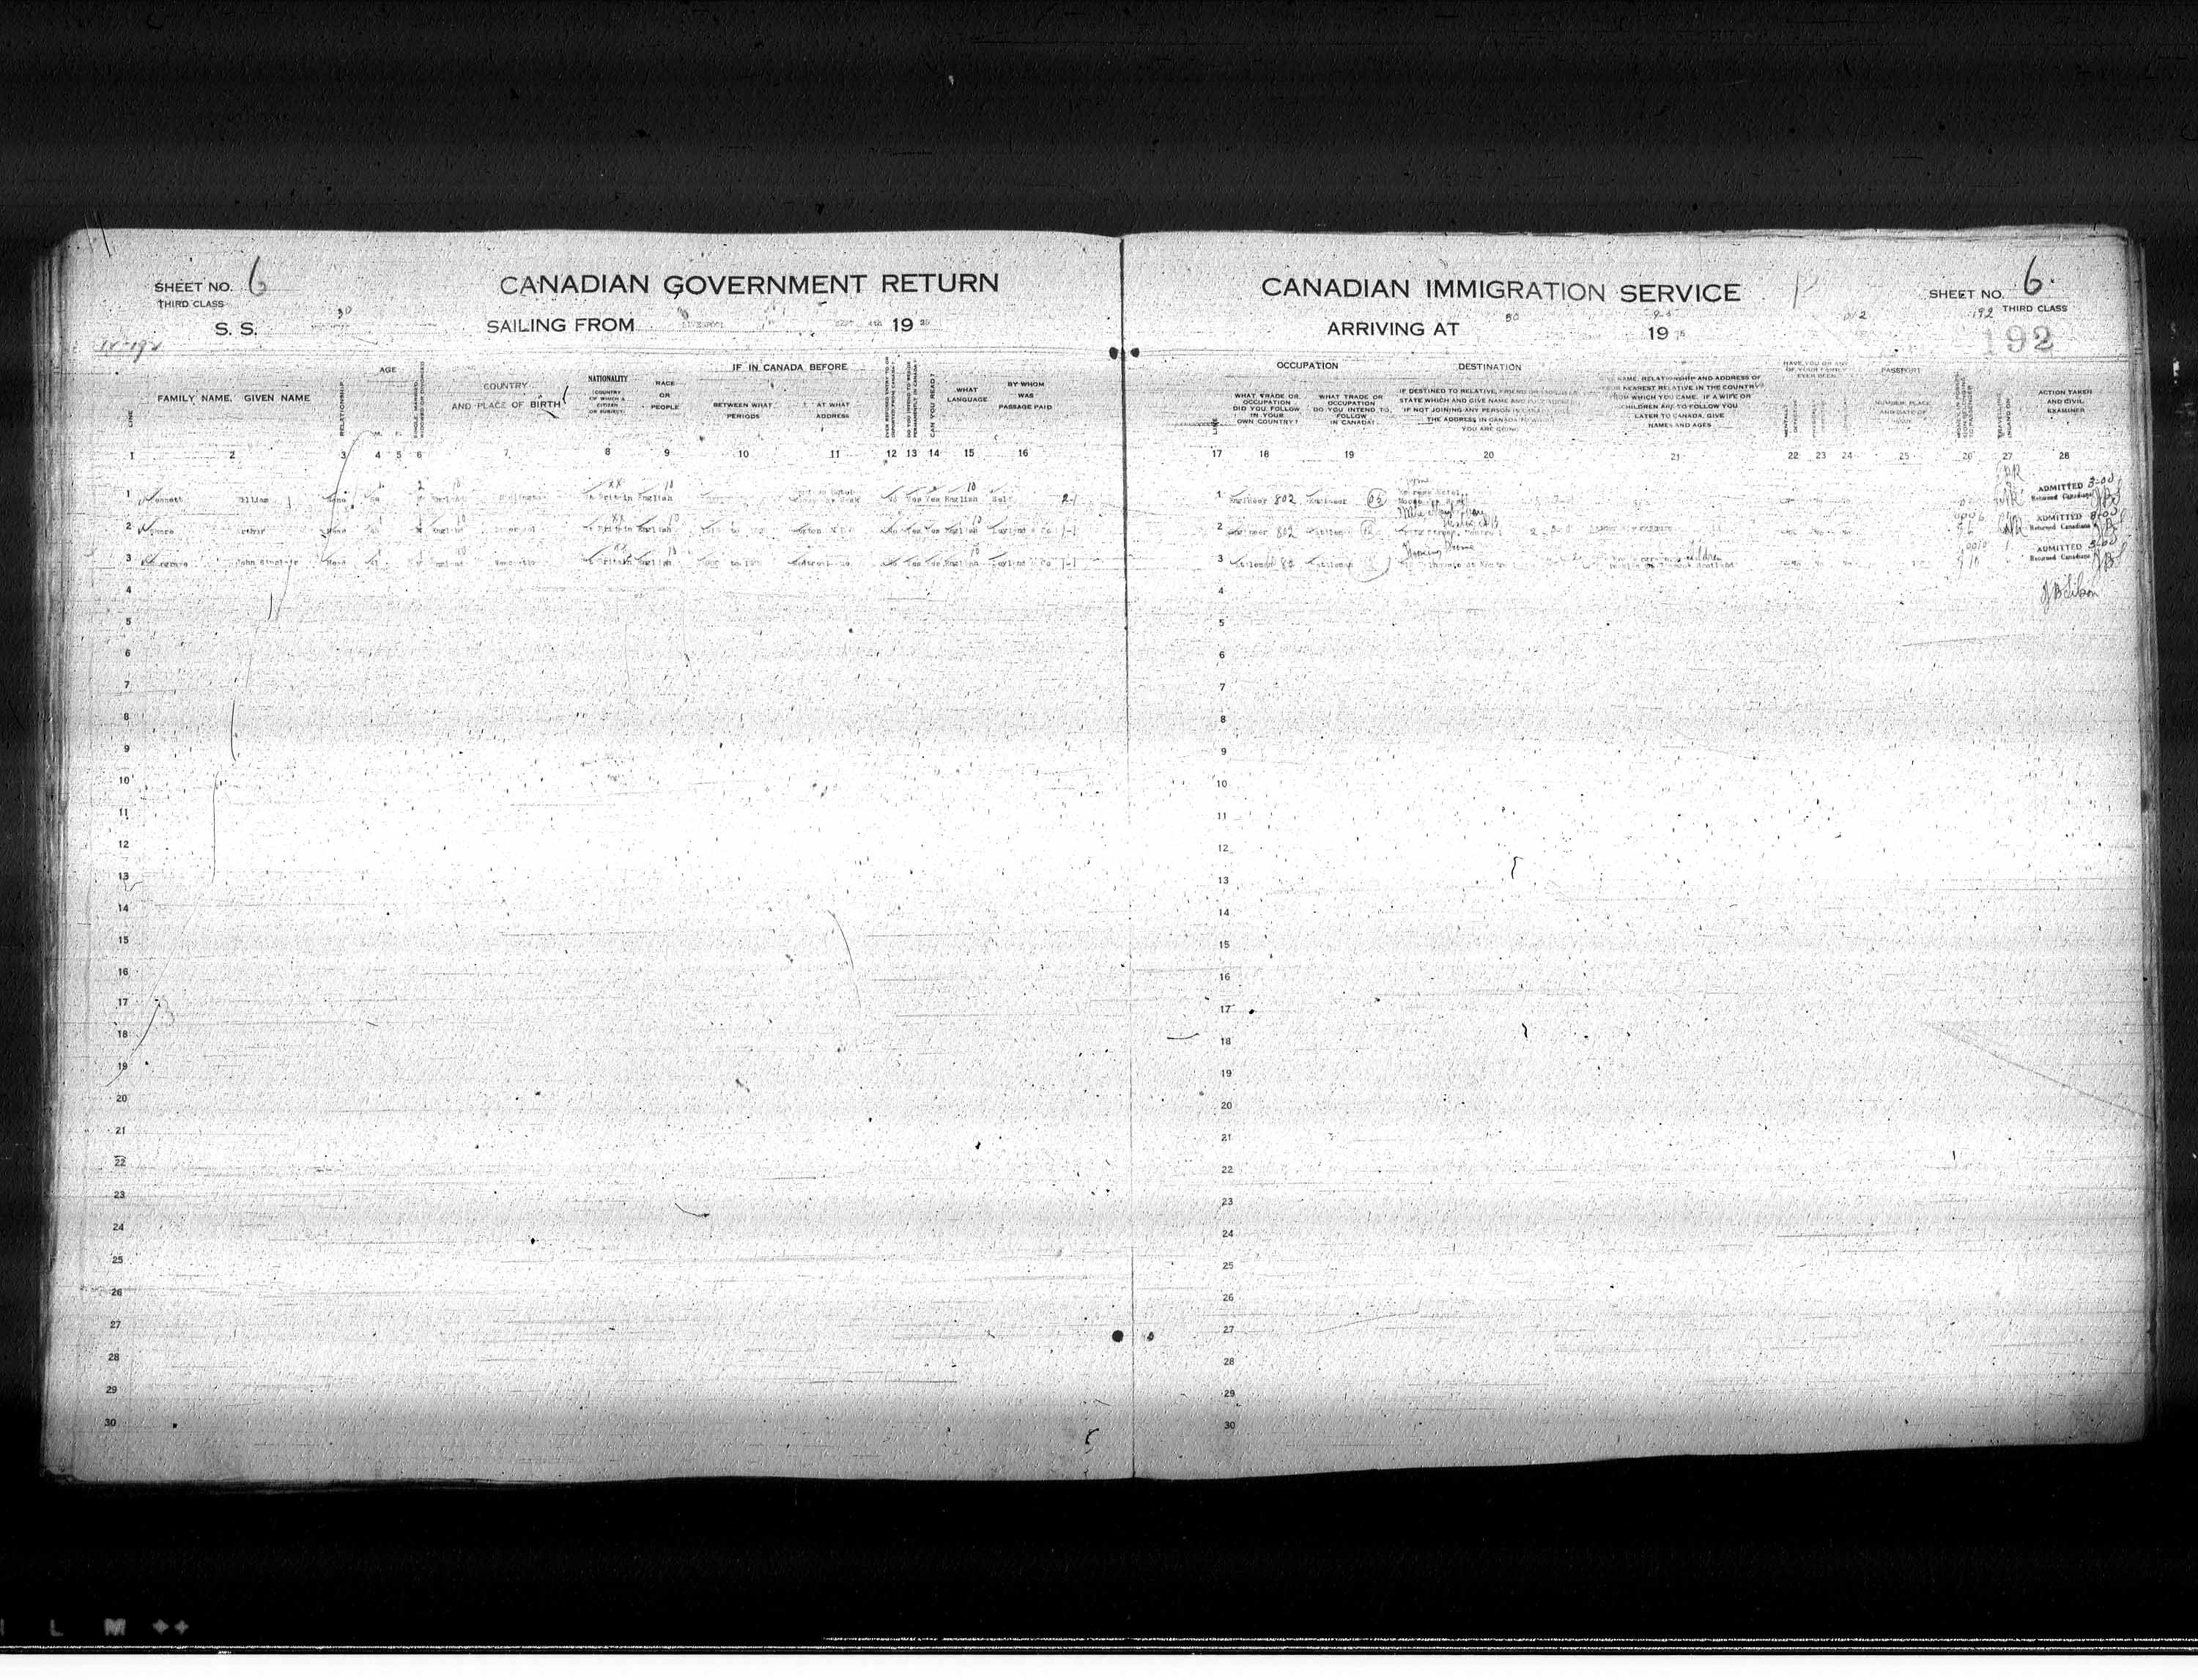 Title: Passenger Lists: Quebec City (1925-1935) - Mikan Number: 134839 - Microform: t-14719